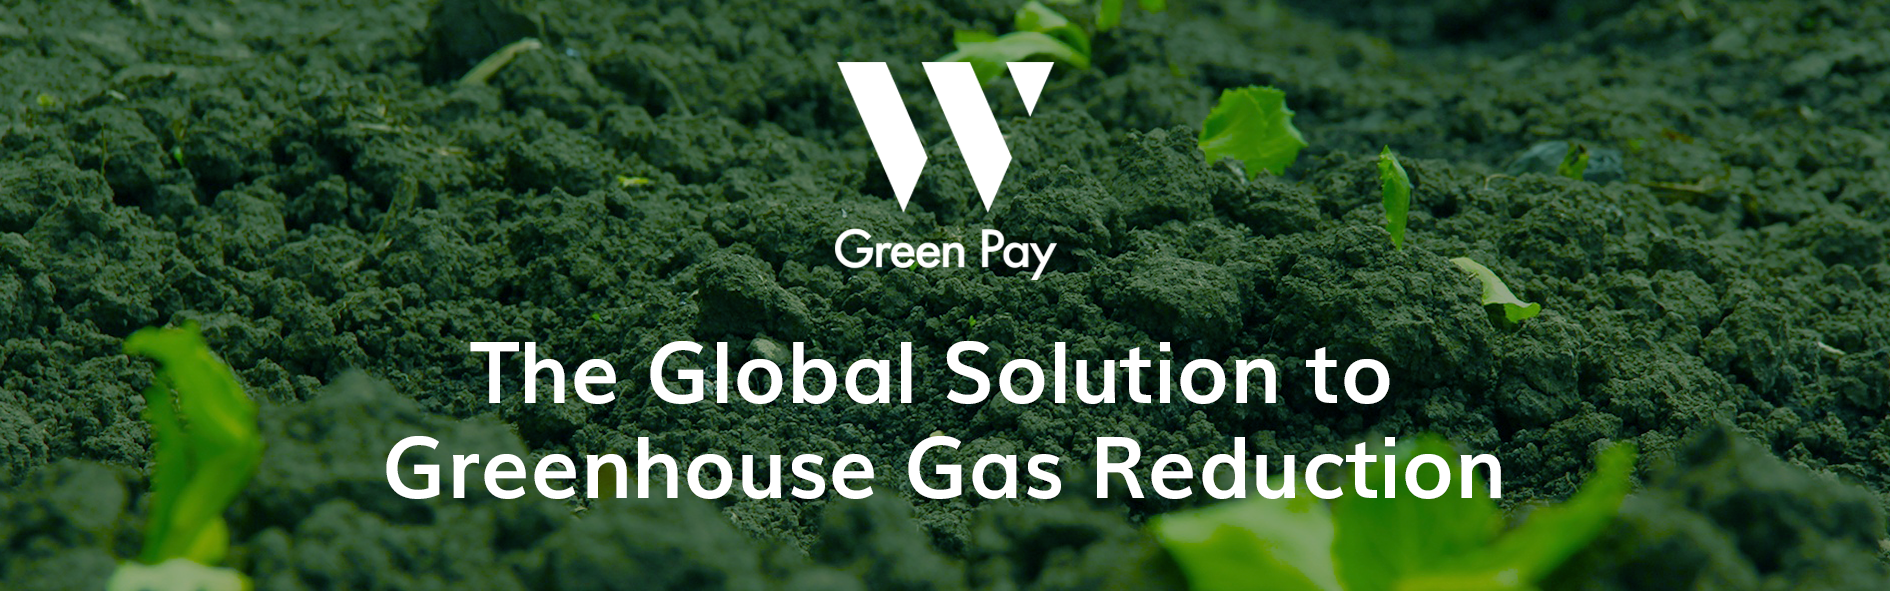 W Green Pay — The Global Solution to Greenhouse Gas (GHG